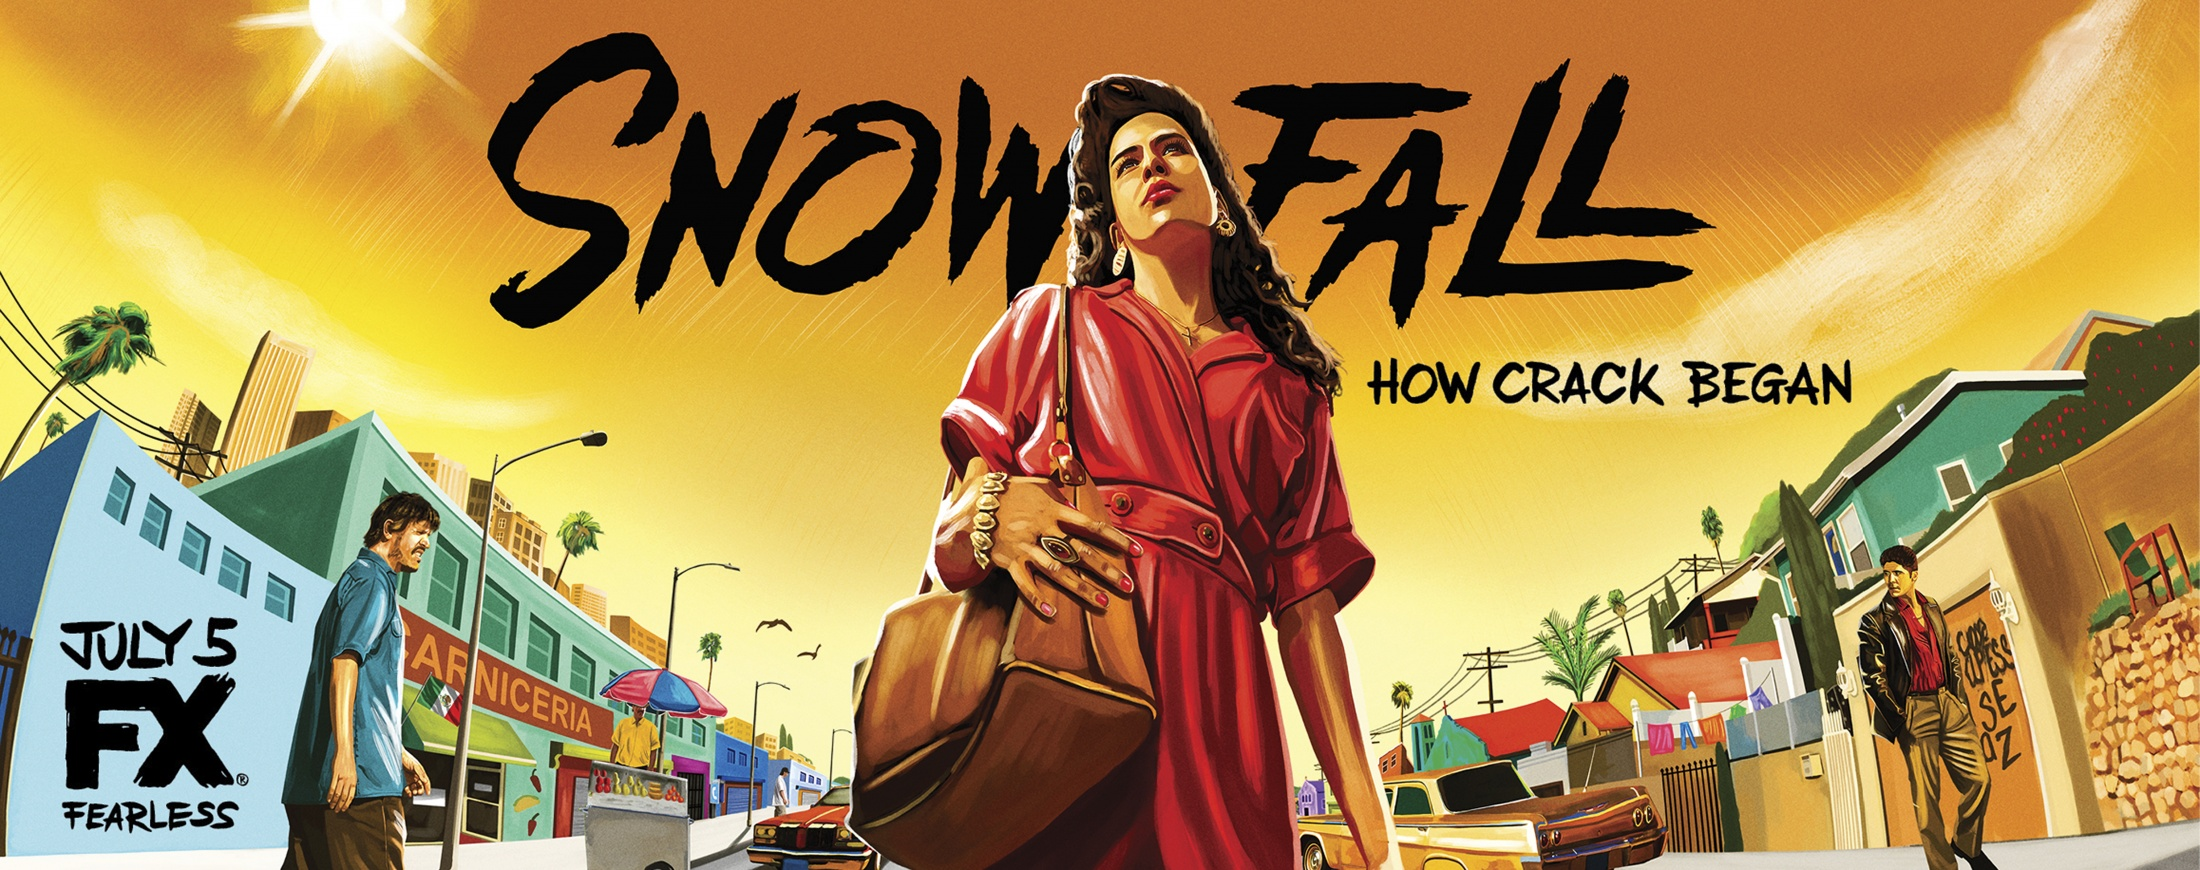 Thumbnail for Snowfall billboard (Lucia)